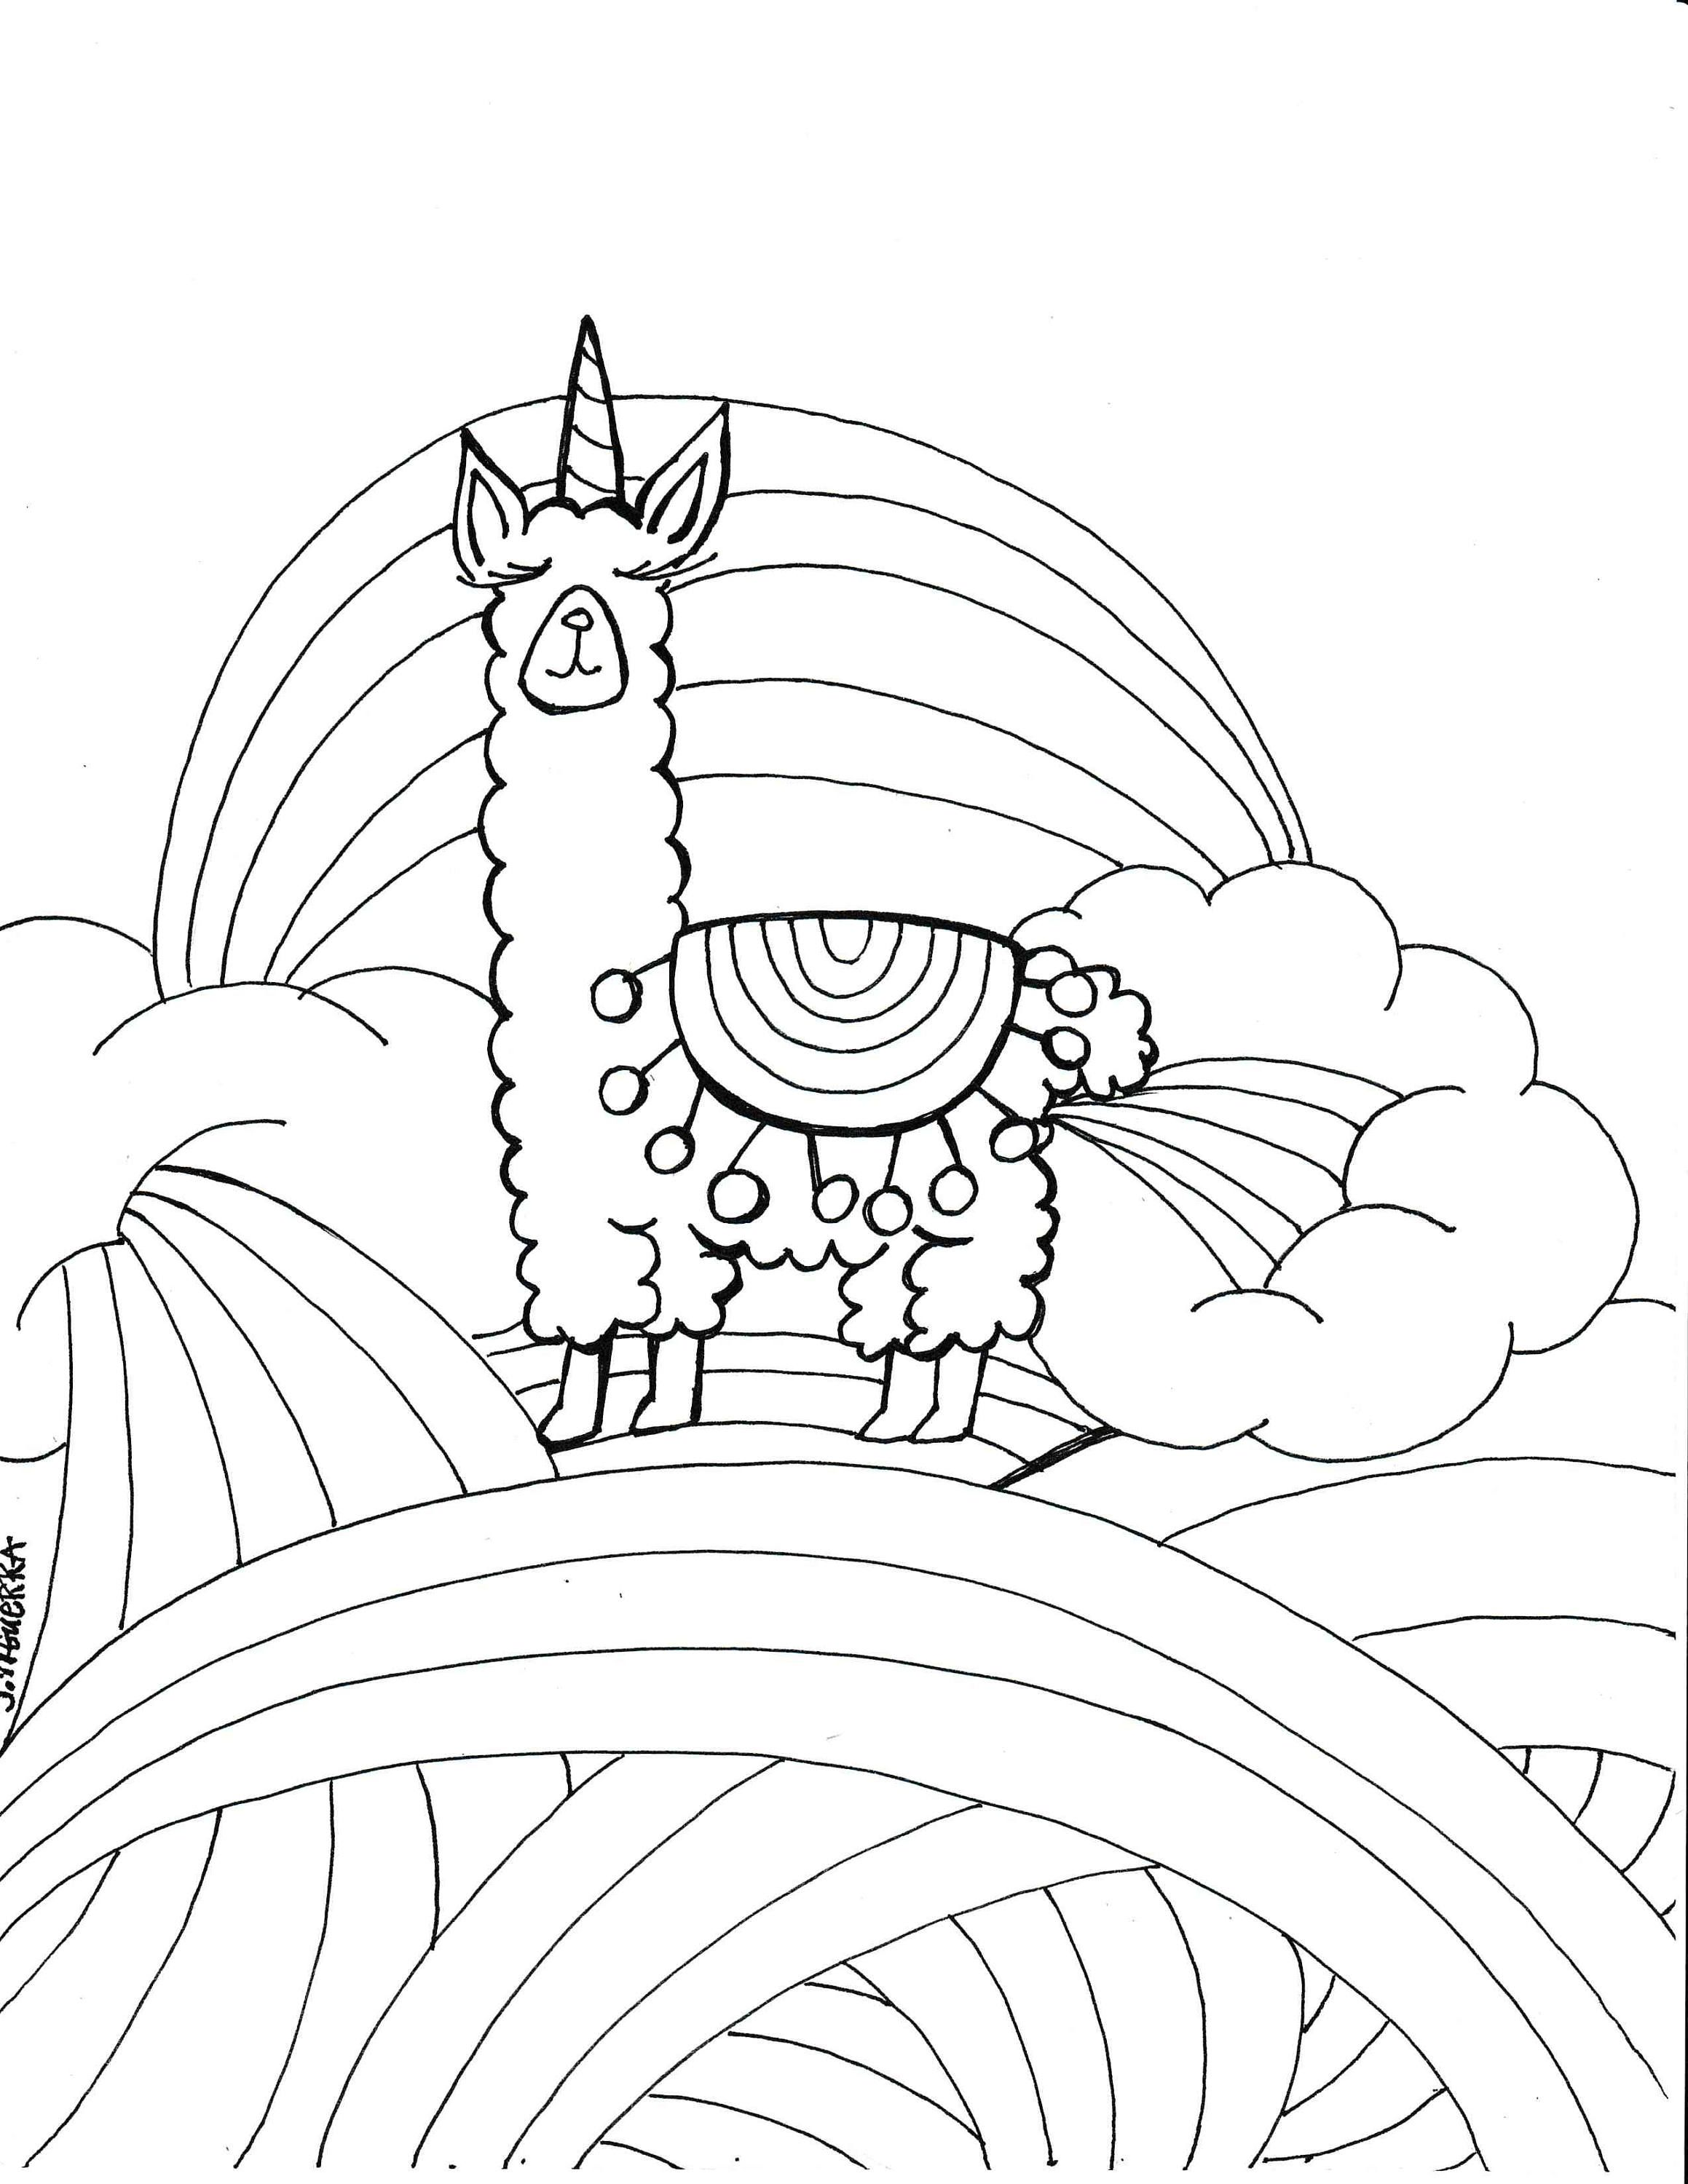 coloring pages pdf # 1